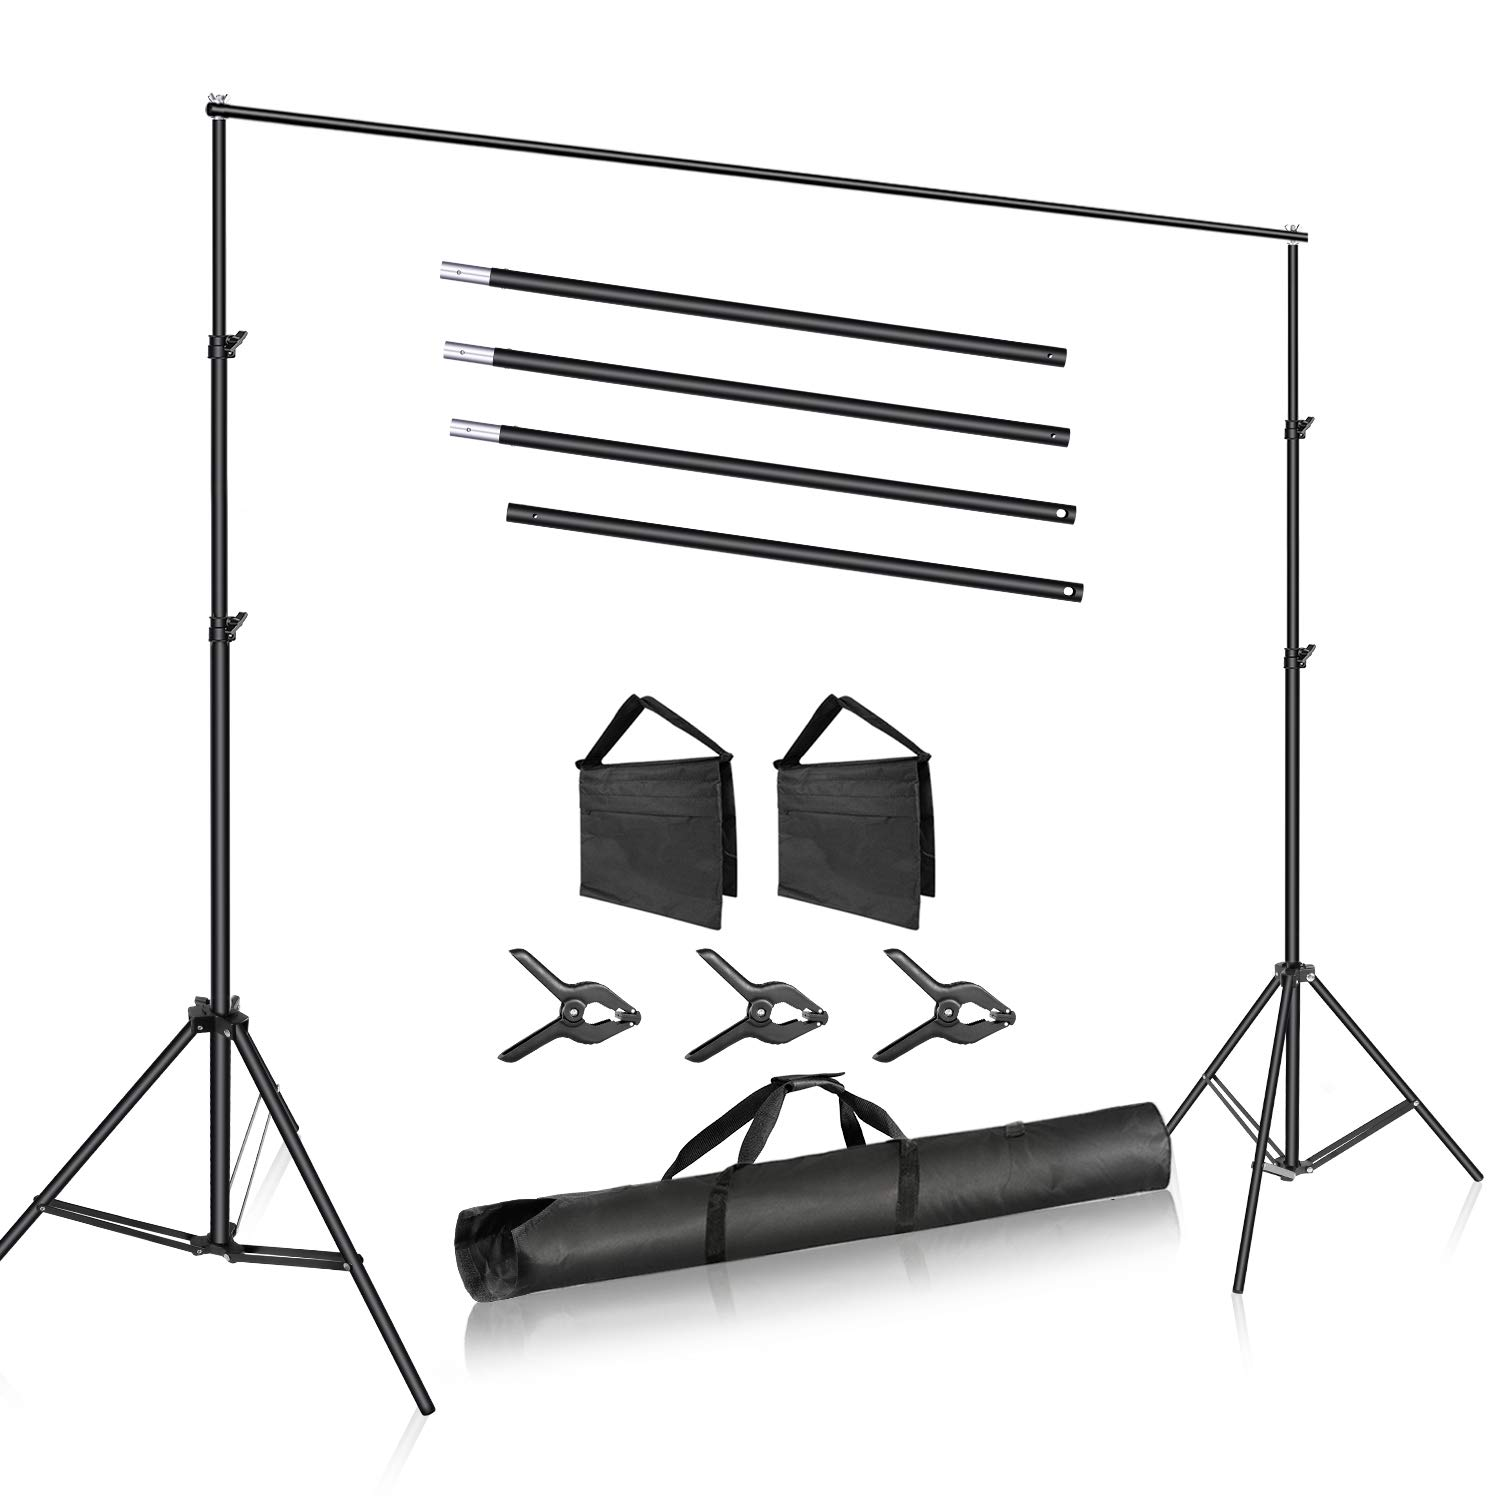 Neewer Photo Studio 10ft/3m Wide Cross Bar 6.6ft/2m Tall Adjustable Background Stand Backdrop Support System with 3 Backdrop Clamps, 2 Sandbags and Carry Bag for Portrait Product Video Photography by Neewer